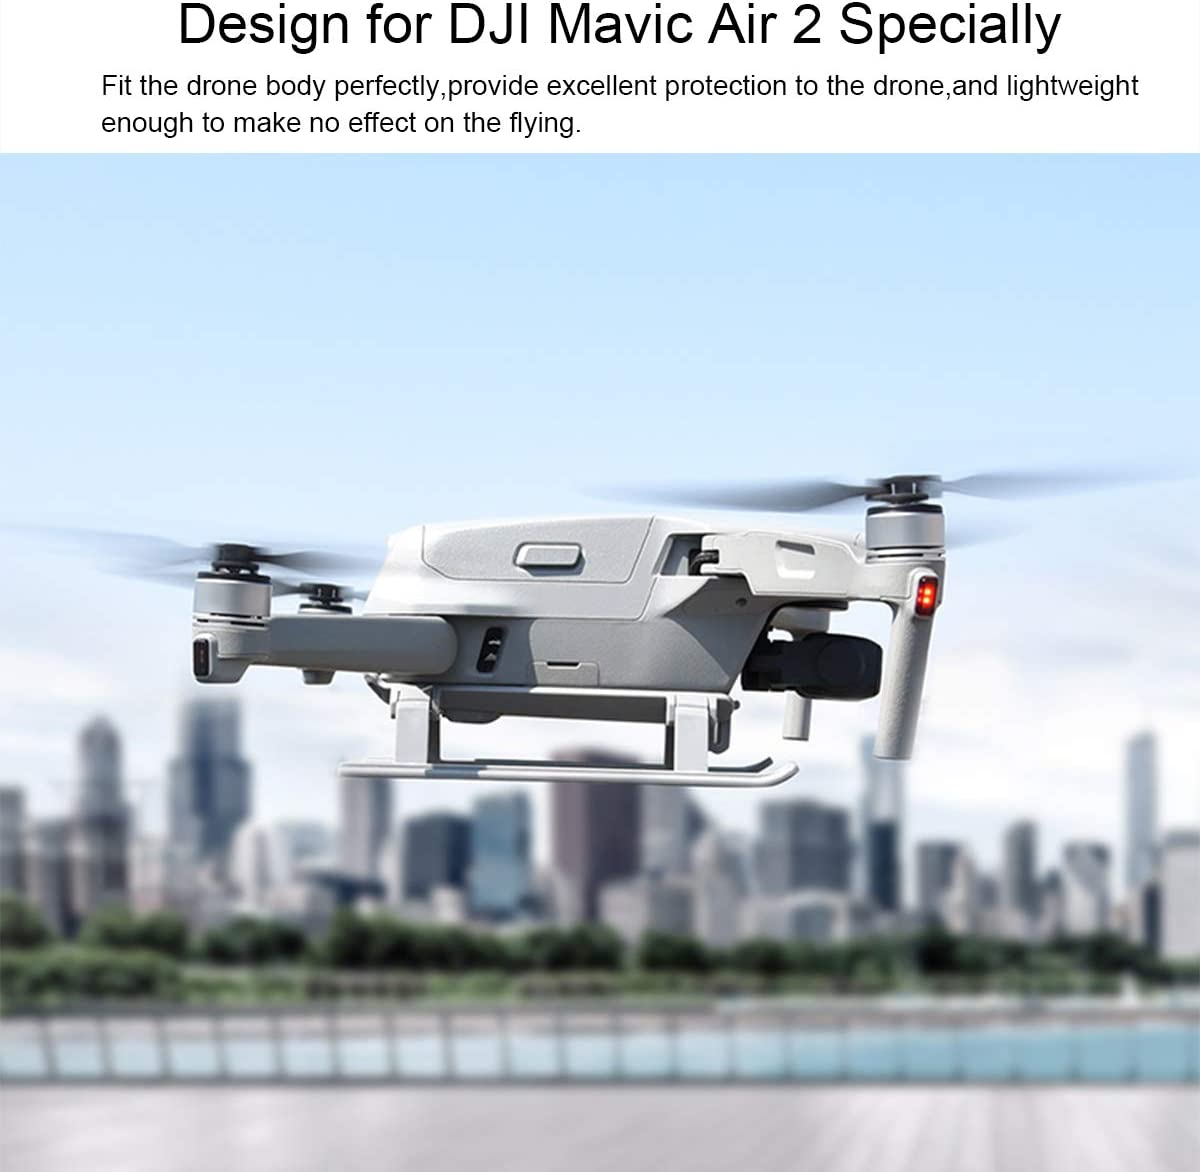 Collapsible Landing Gear for DJI Mavic Air 2,Extensions Landing Legs Compatible with DJI Mavic Air 2 Drone Accessories